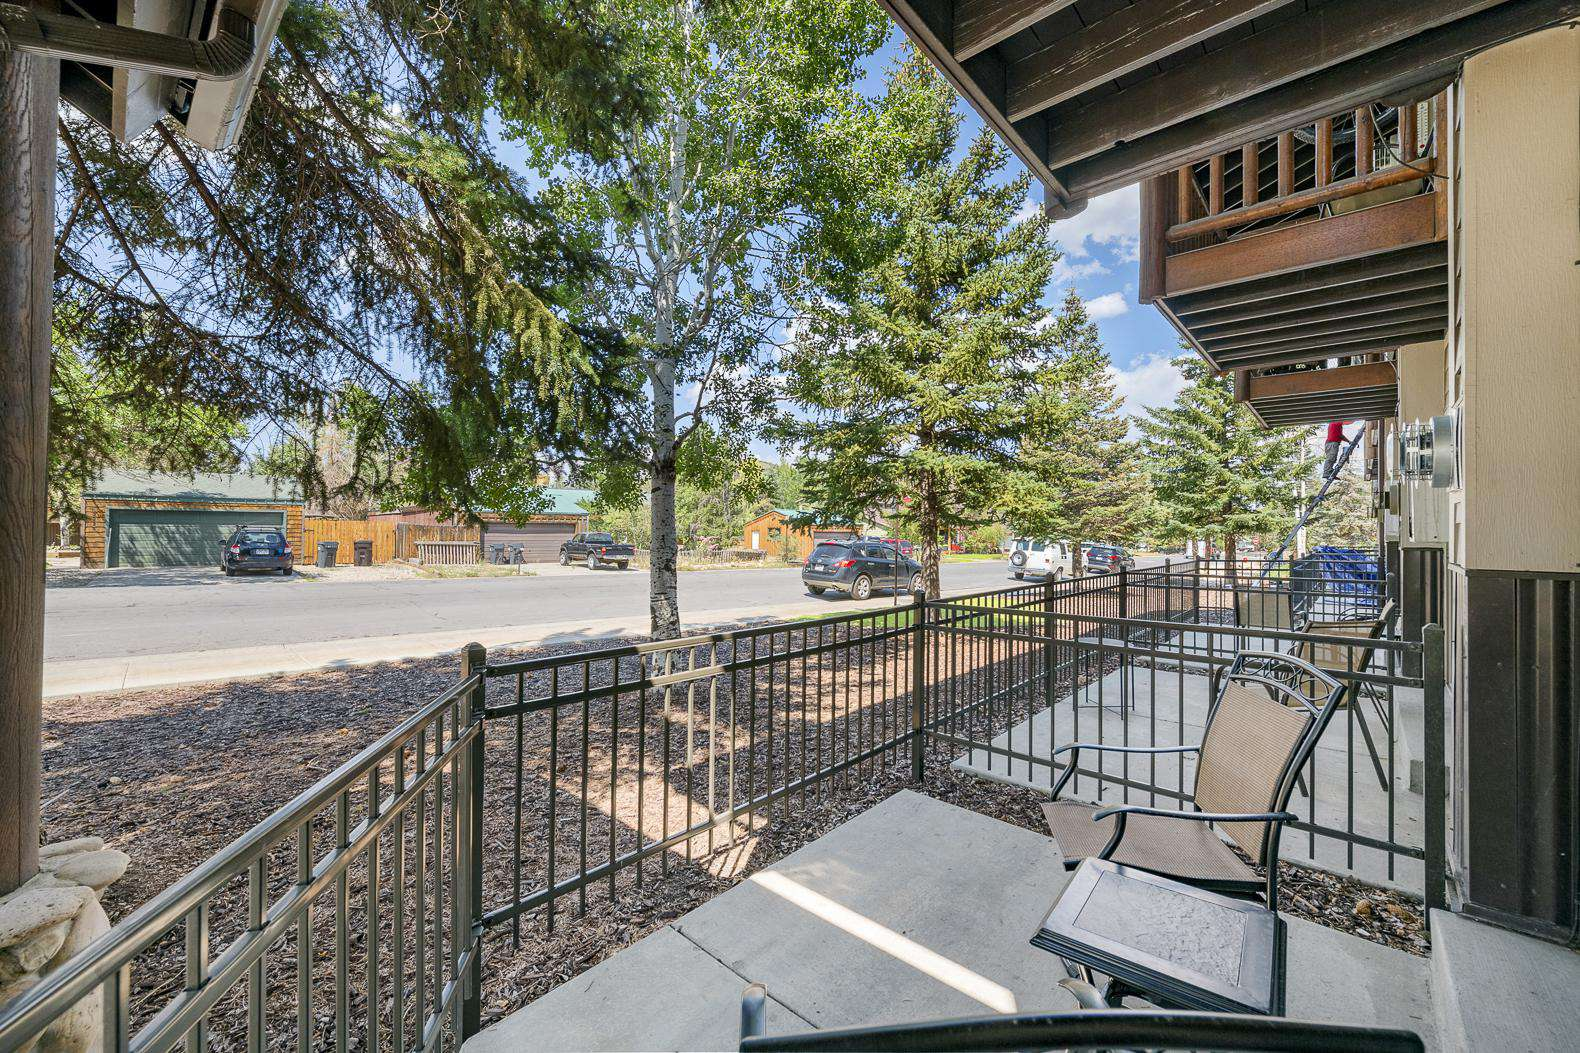 Patio with View of Road and Sidewalk